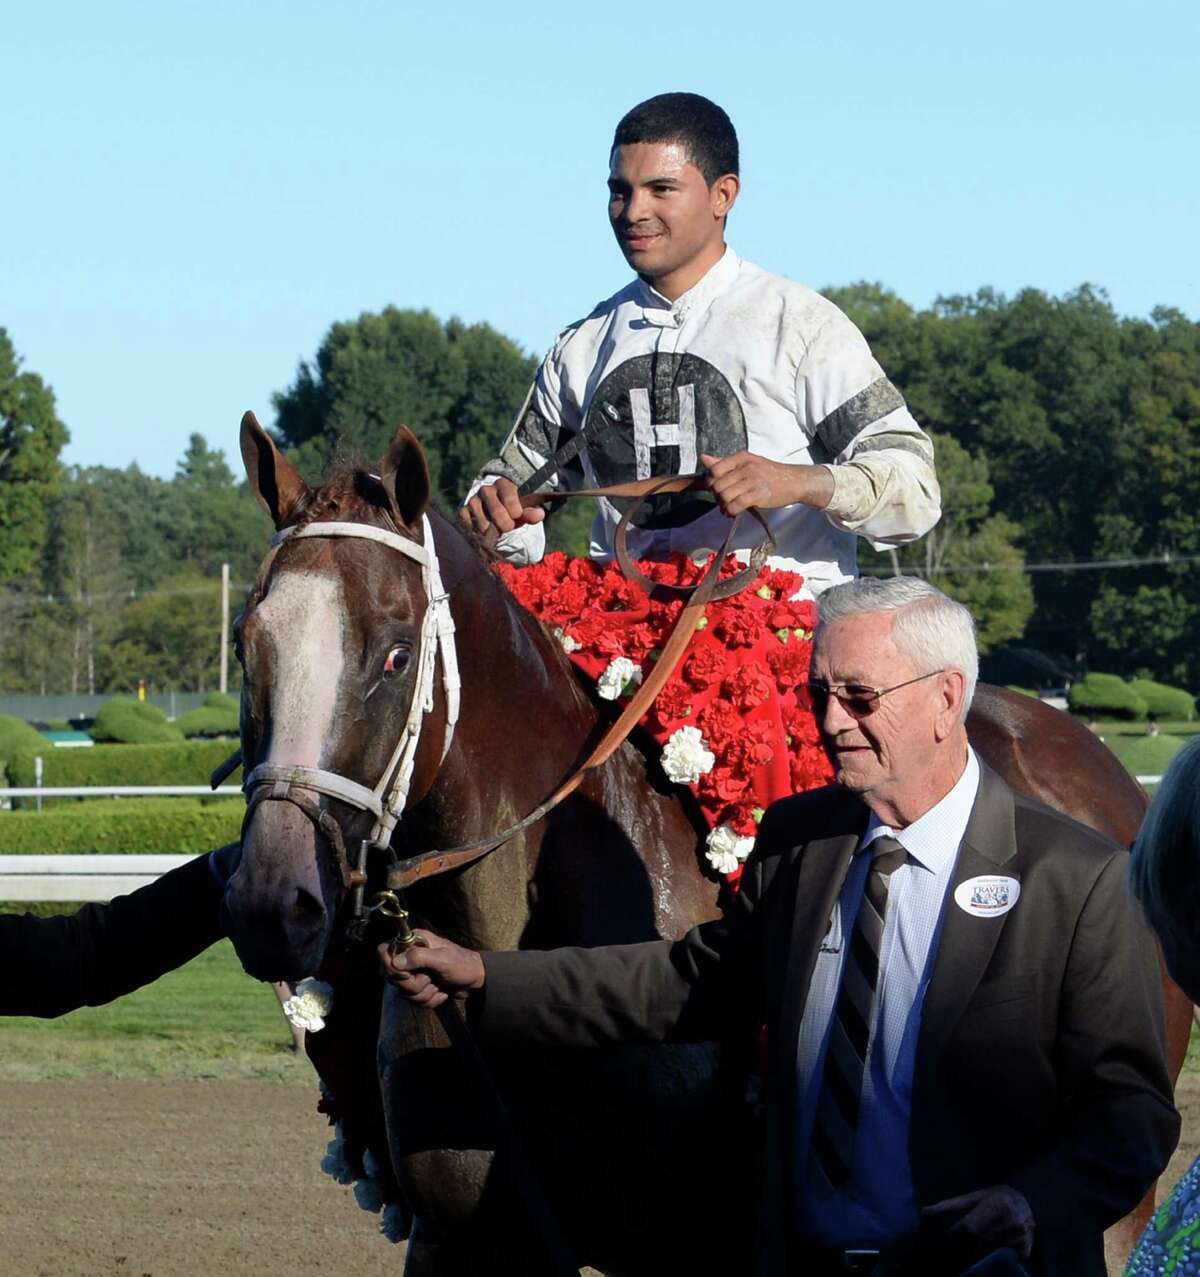 Will Take Charge with jockey Luis Saez is lead to the winner's circle by owner Willis Horton after winning the 144th running of The Travers Stakes, Aug. 24, 2013, at Saratoga Race Course in Saratoga Springs, N.Y. (Skip Dickstein/Times Union)